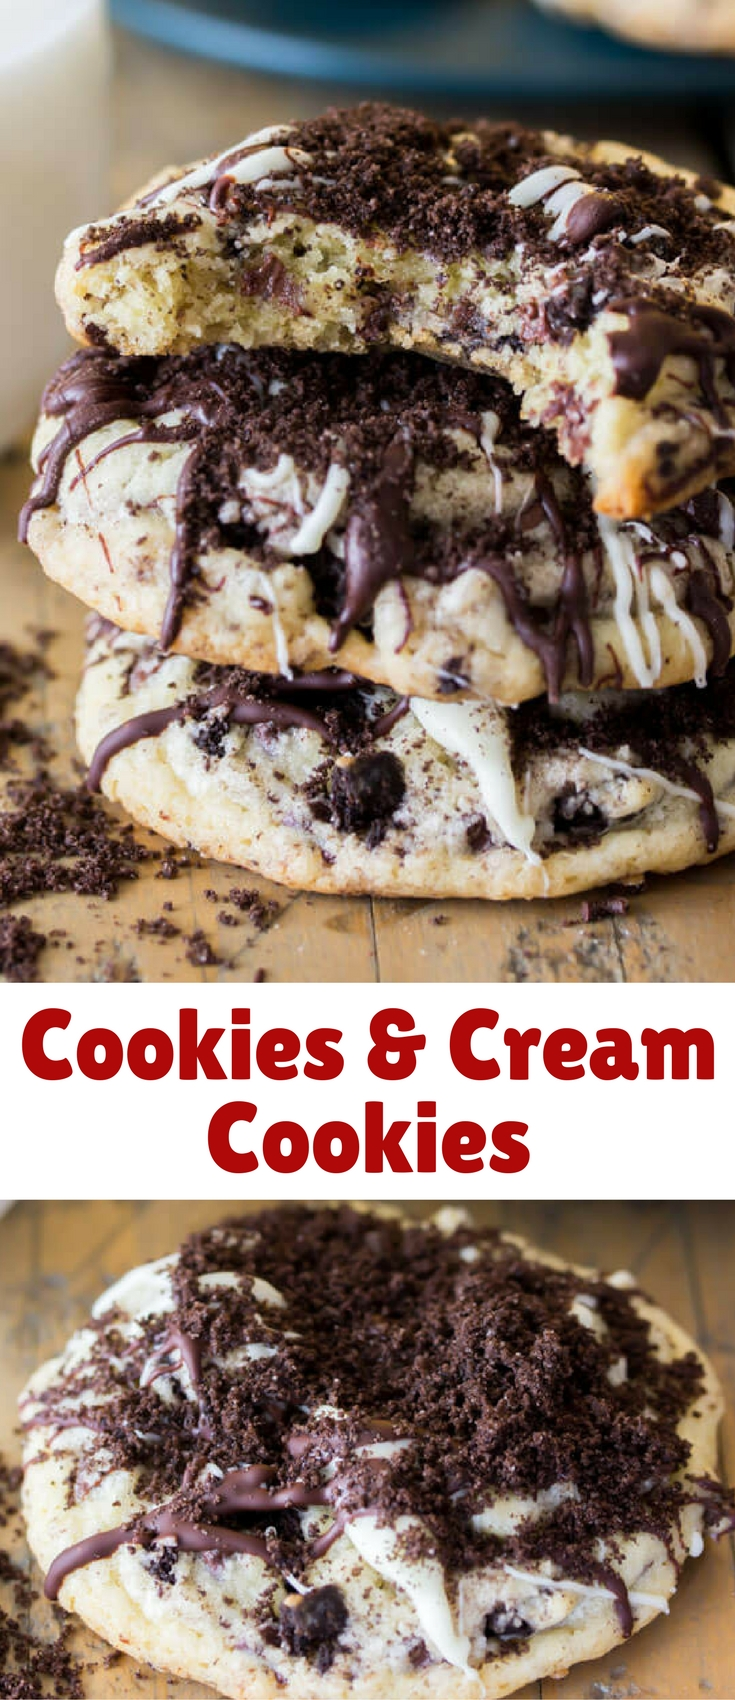 It's cookie inception! These cookies & cream cookies are made of simple vanilla chocolate chip cookies that have been crammed full of Oreo pieces, and then topped off with dark chocolate, white chocolate, and cookie crumbs!